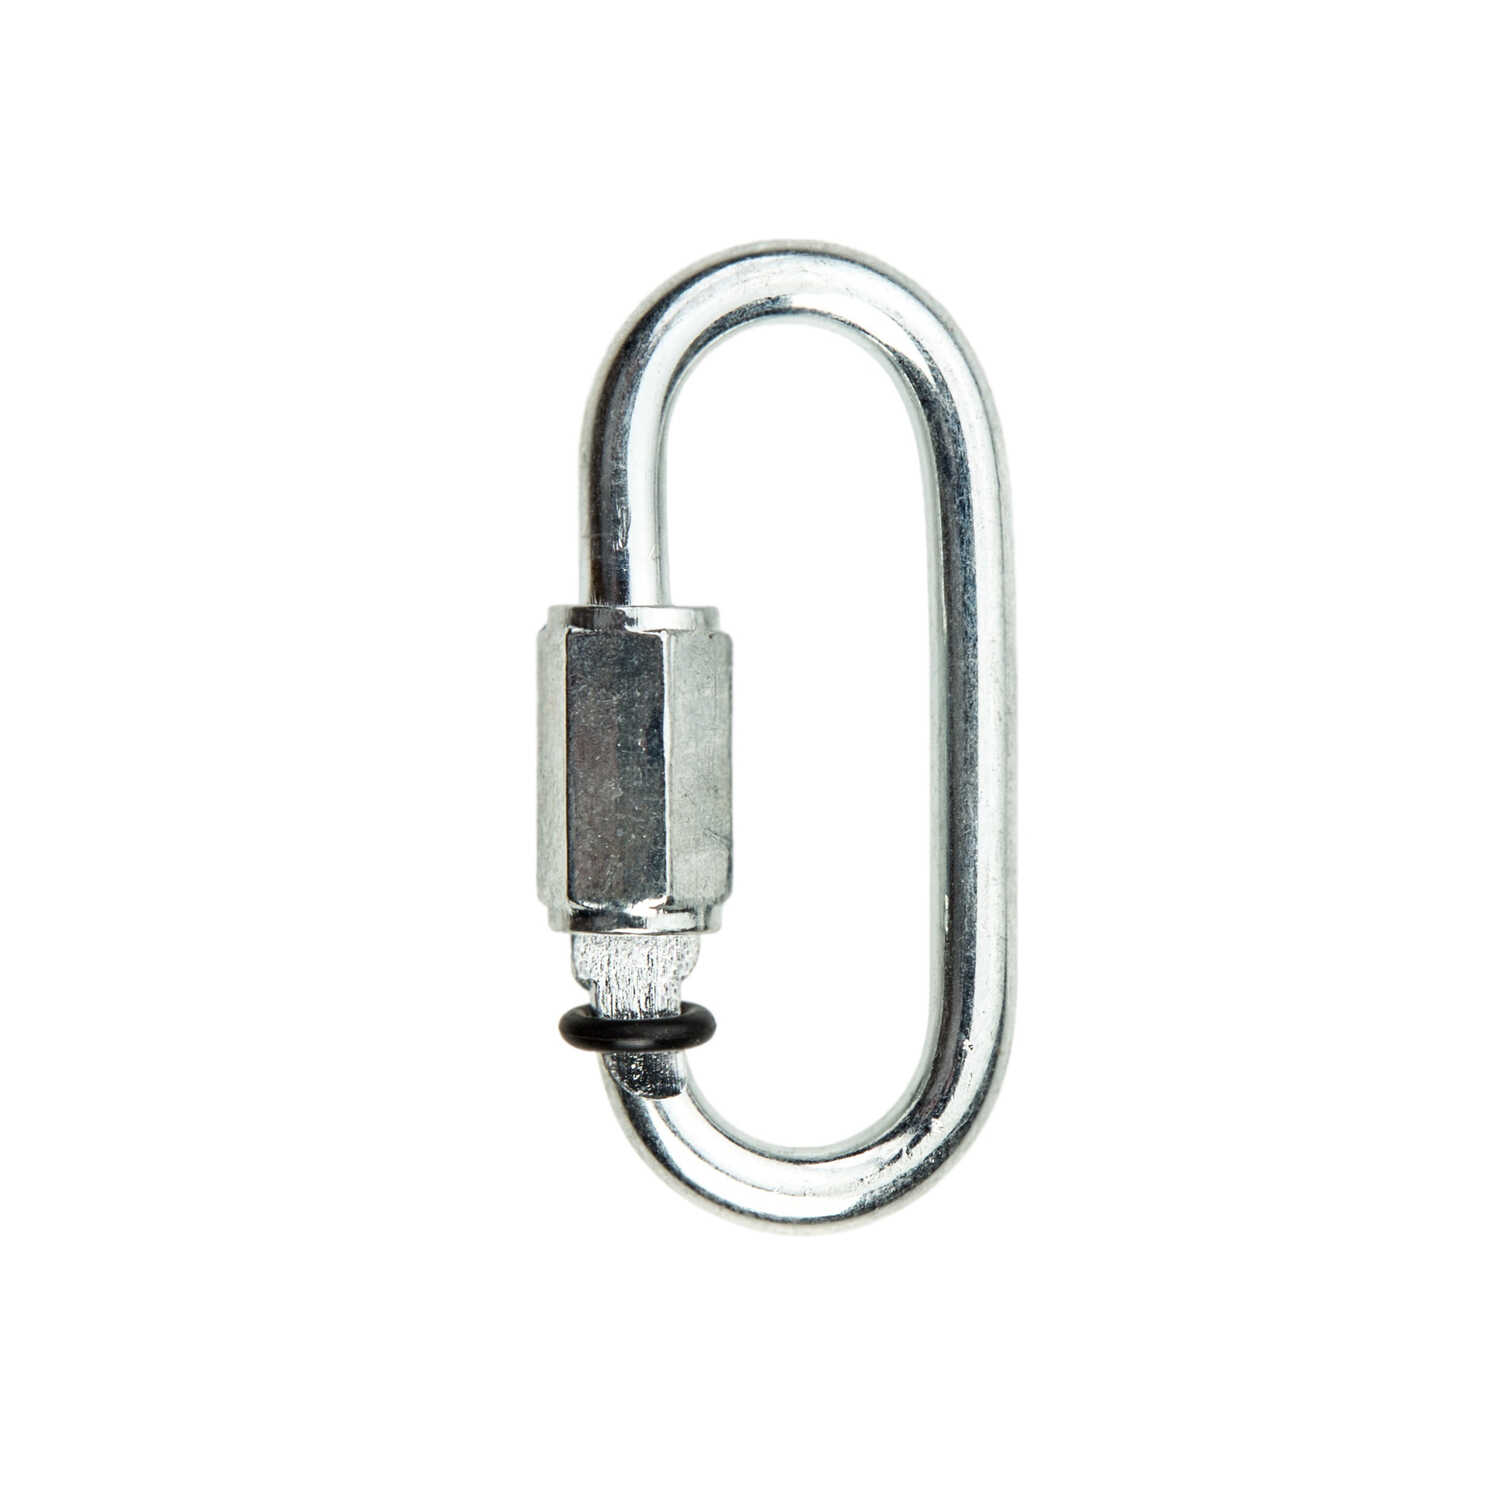 Klecker Knives  Stowaway Quick-Link  Every Day Carry  Stainless Steel  Carabiner  .85 in. Dia.